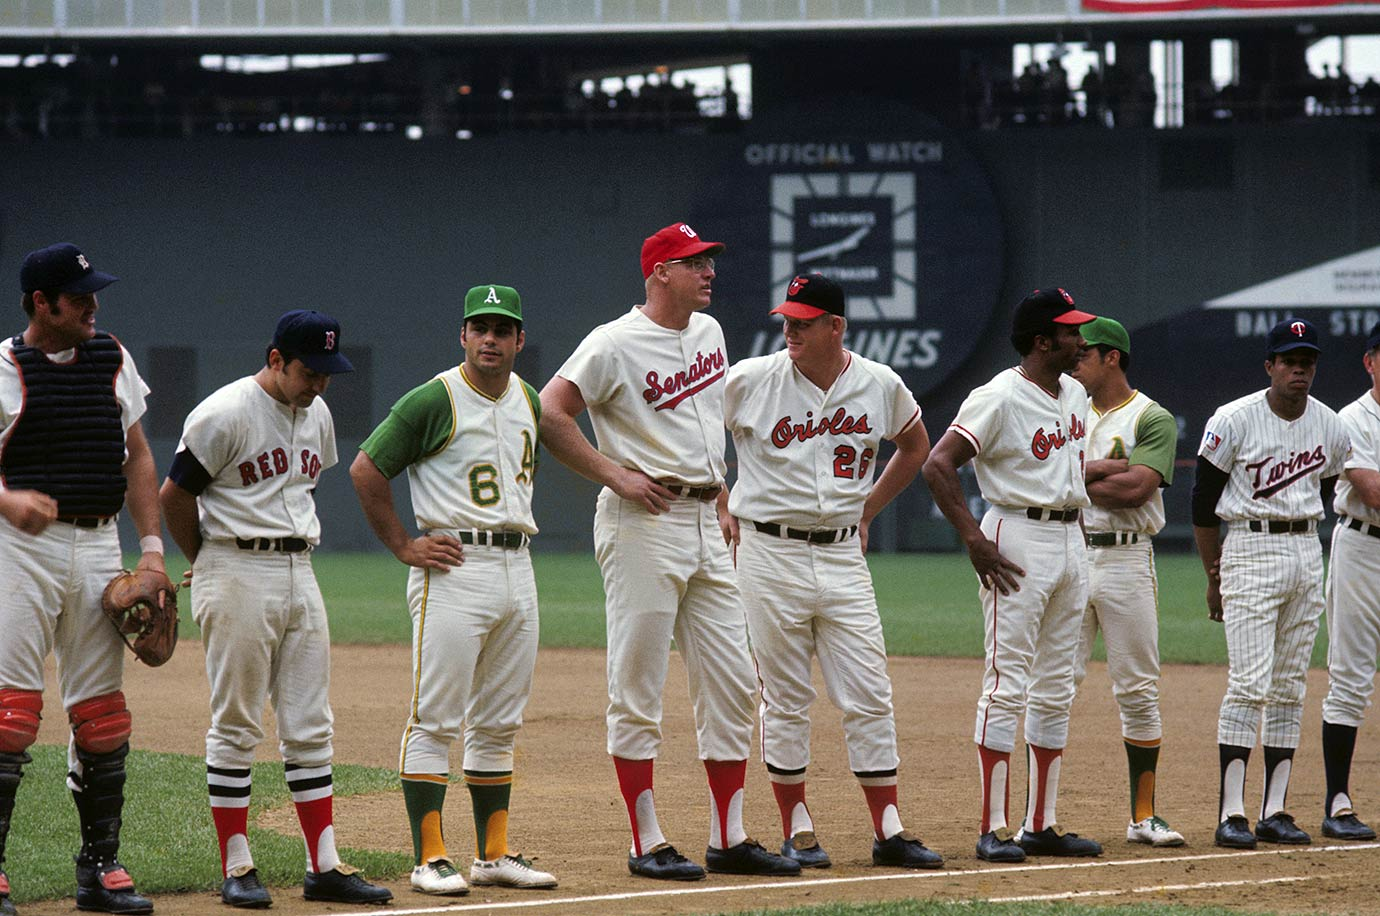 July 23, 1969 — MLB All-Star Game